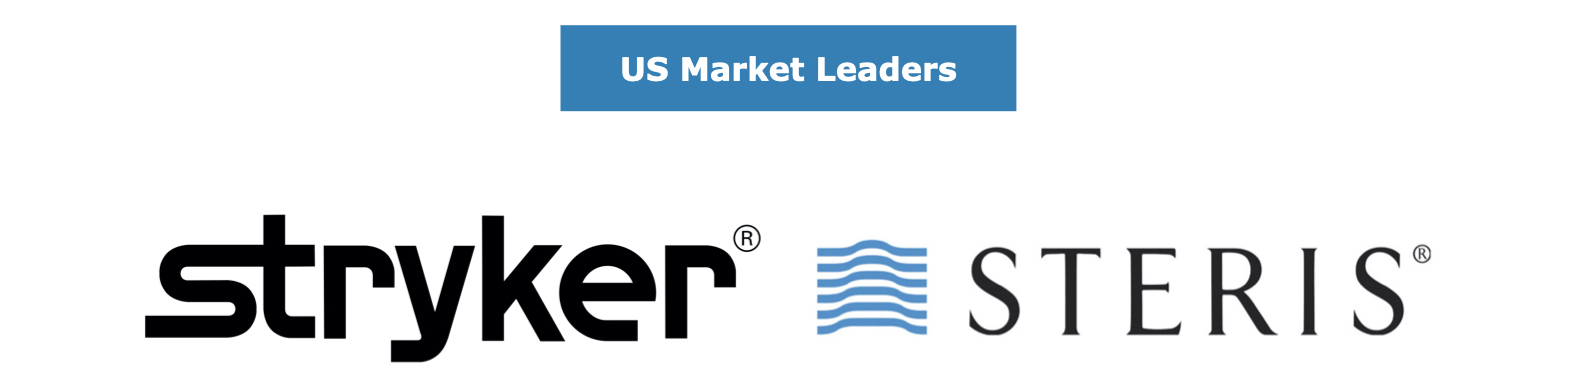 US Operating Room Equipment Market Leaders